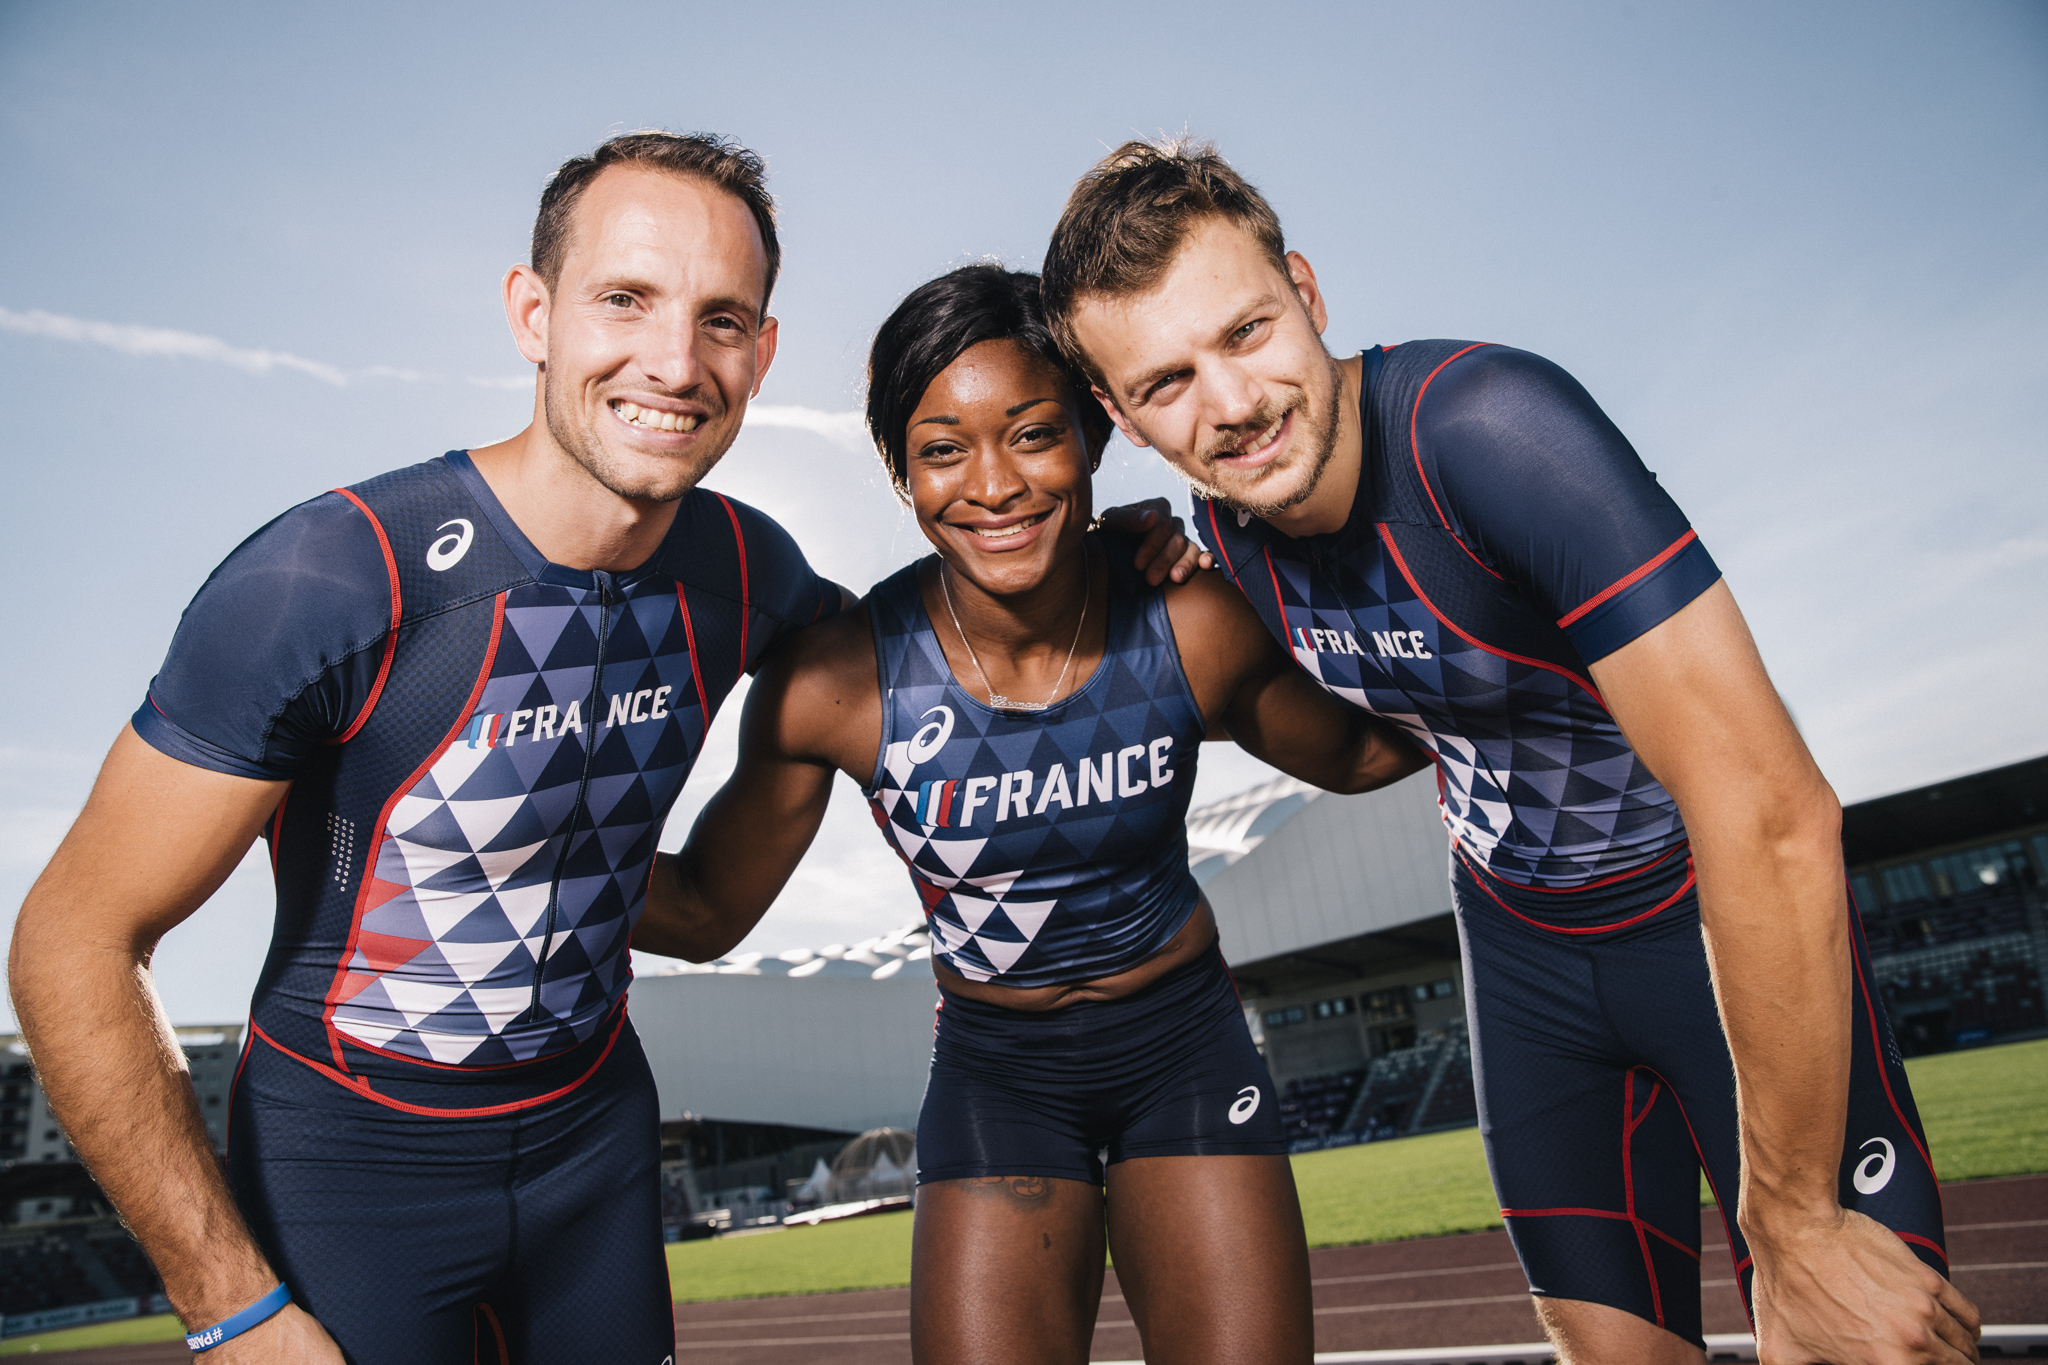 survetement asics france athletisme